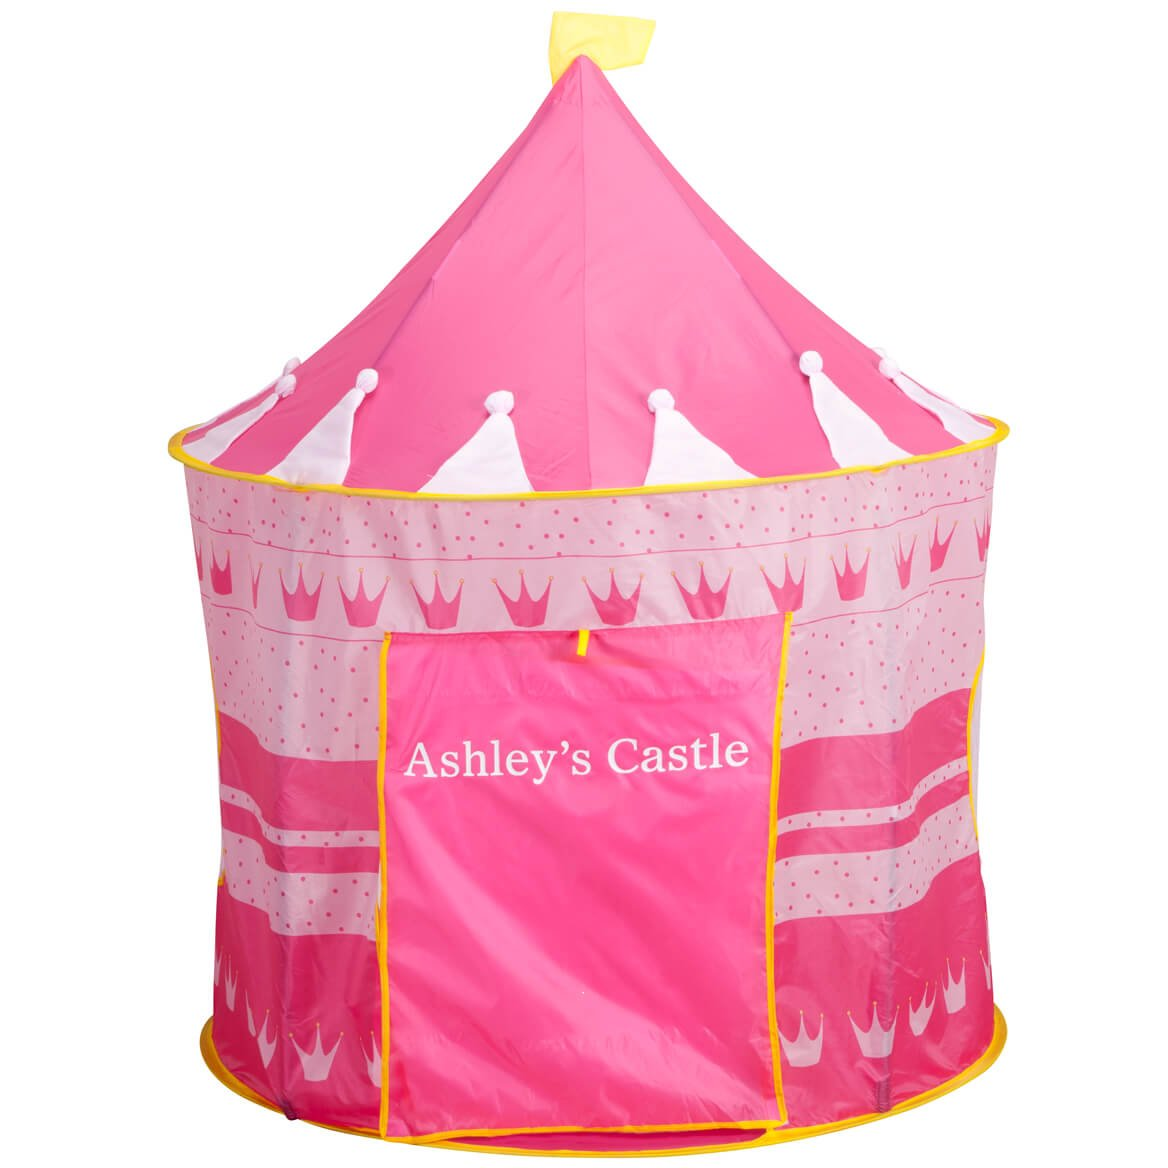 Amazon.com Miles Kimball Personalized Childrenu0027s Tent (Pink) Toys u0026 Games  sc 1 st  Amazon.com & Amazon.com: Miles Kimball Personalized Childrenu0027s Tent (Pink): Toys ...